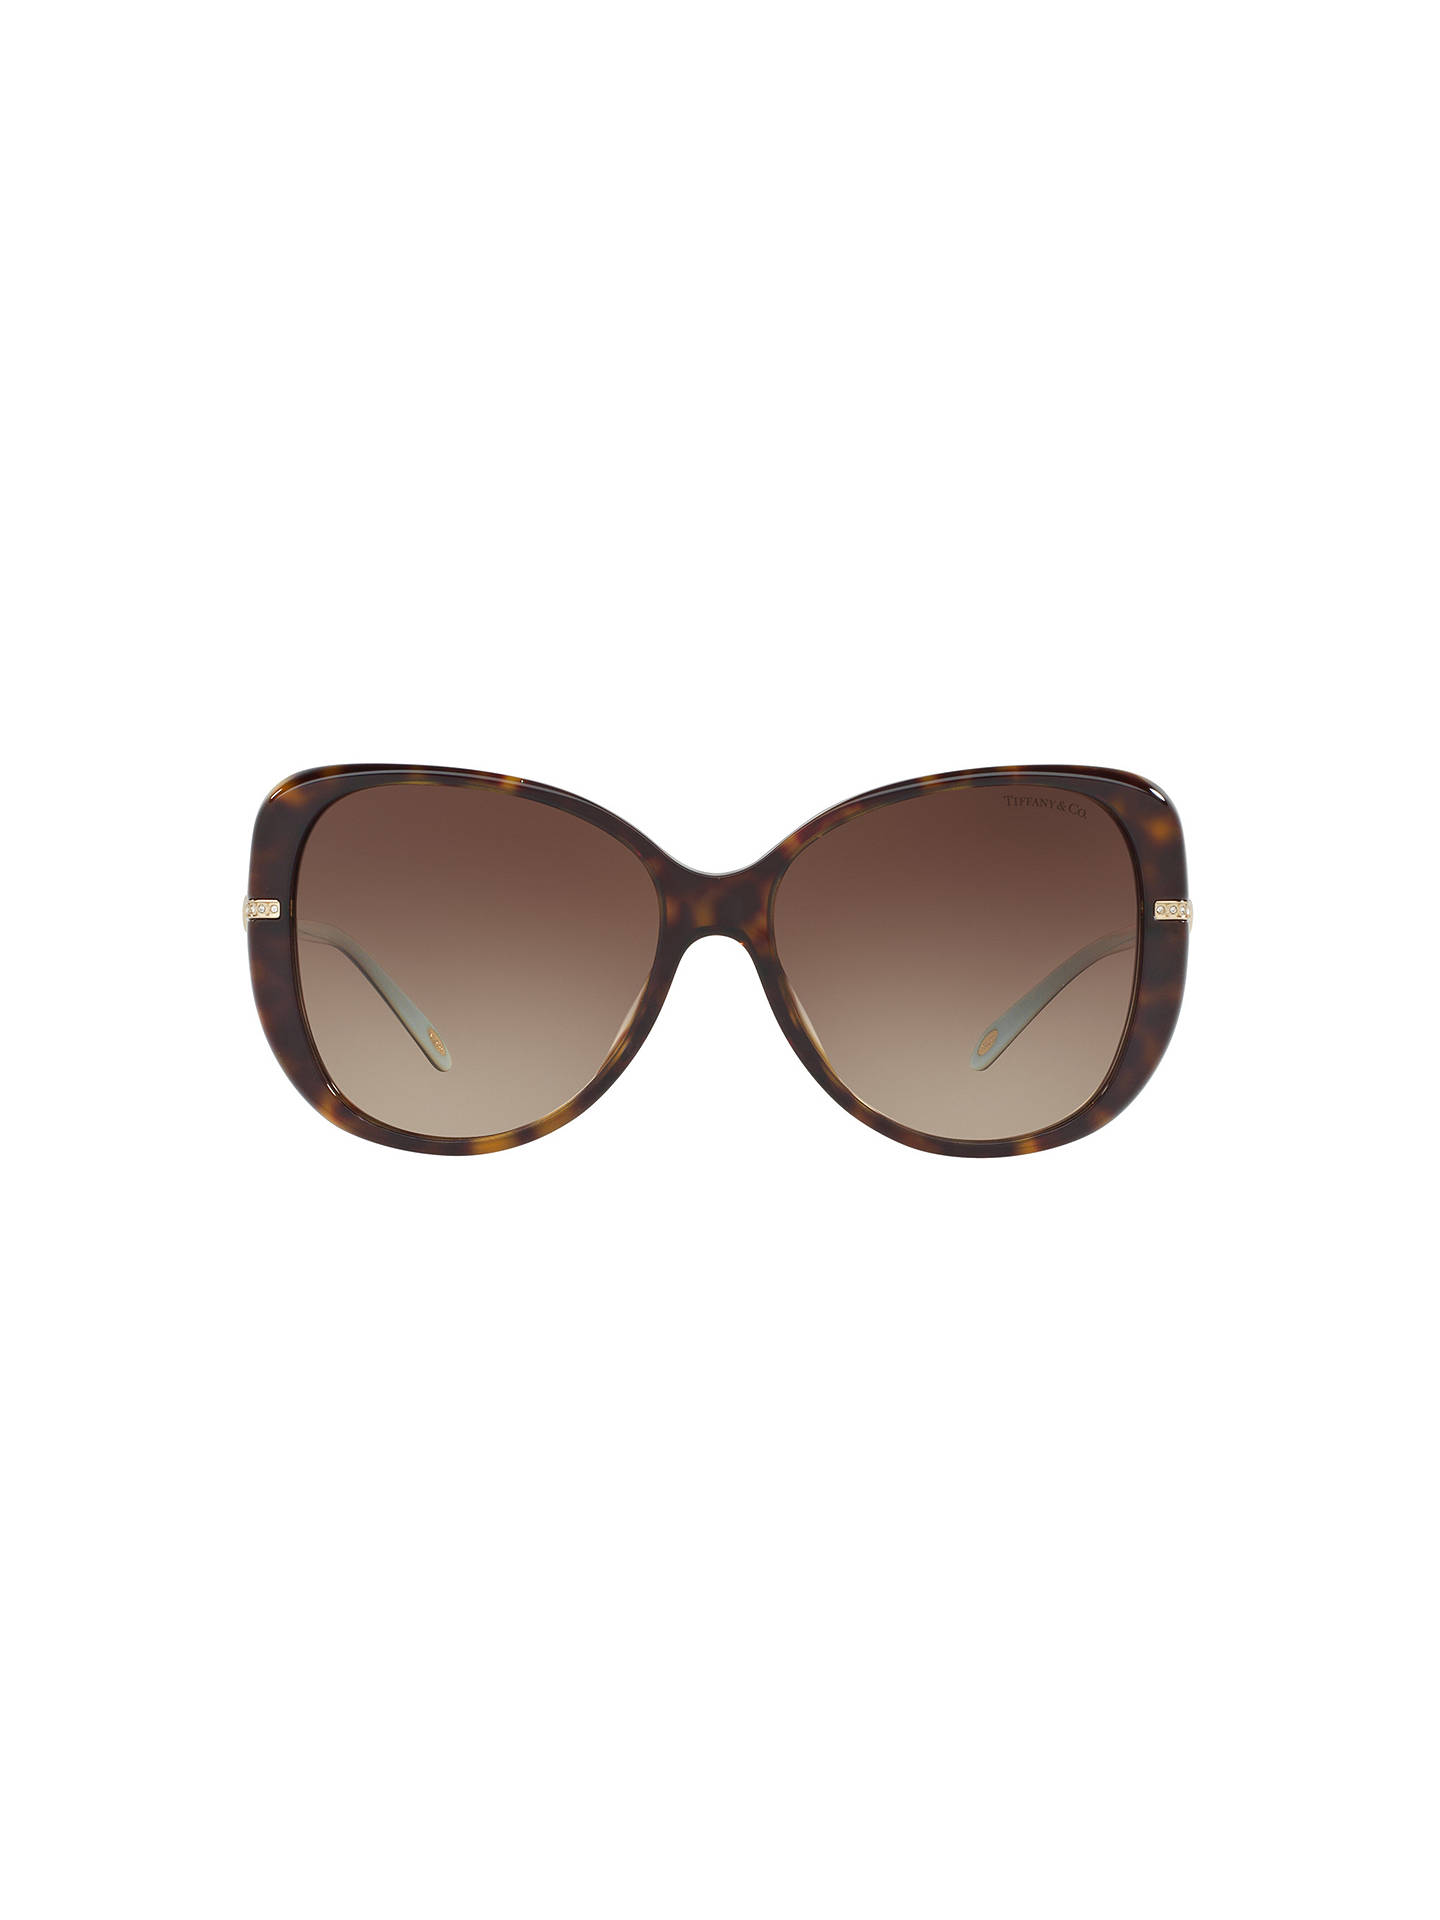 Buy Tiffany & Co TF4126B Embellished Cat's Eye Sunglasses, Tortoise/Brown Gradient Online at johnlewis.com